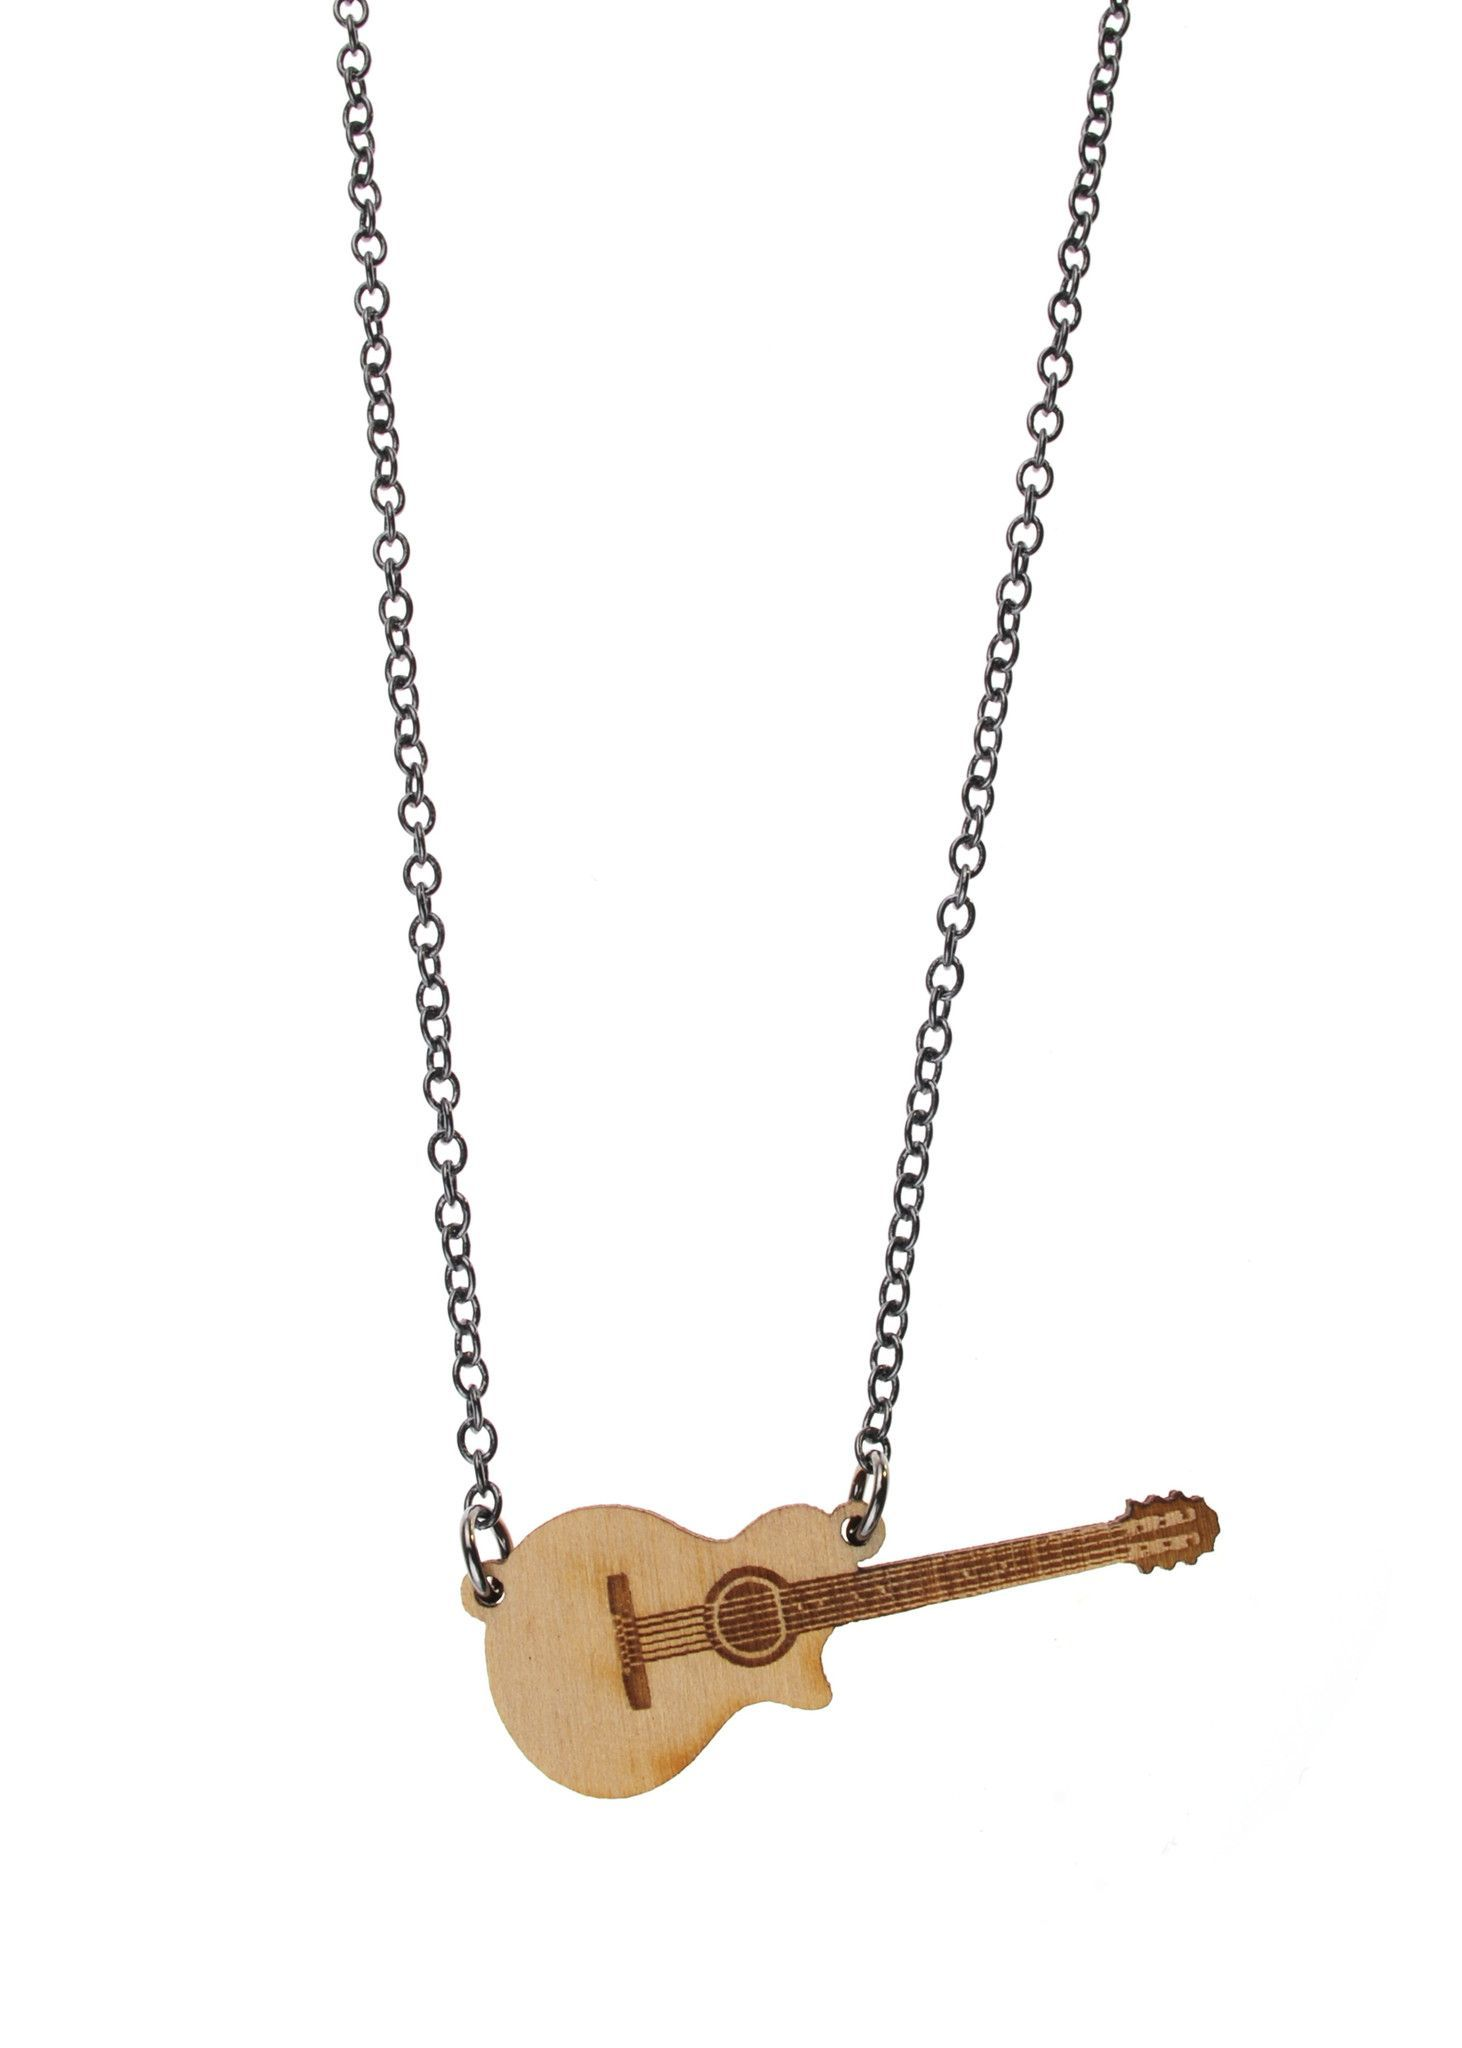 wa cgi official bin penny woa product paul necklace royal store mccartney guitar webobjects